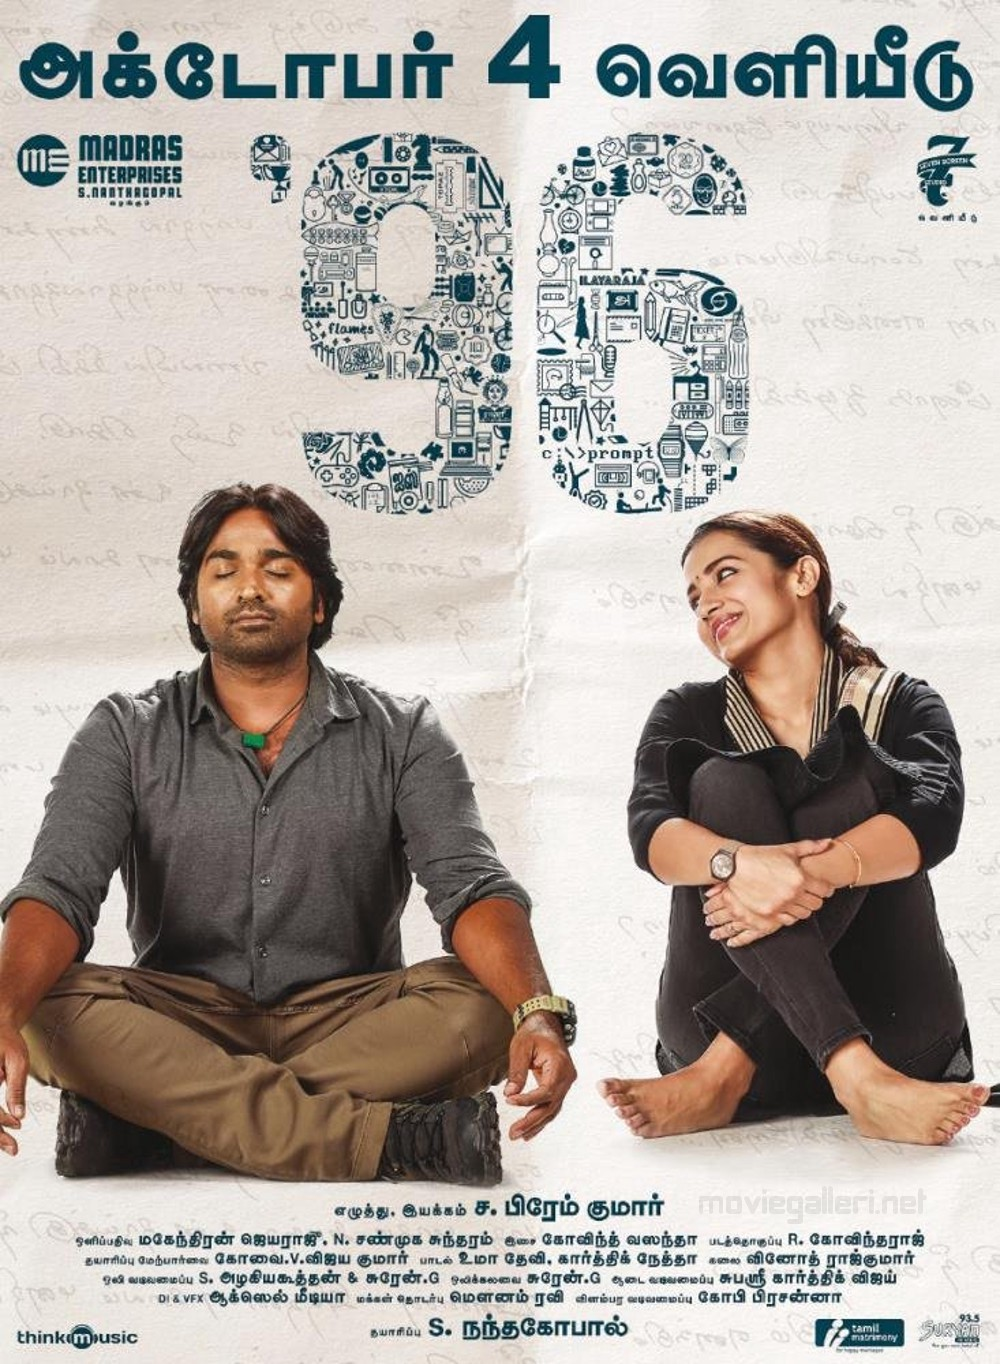 96 Tamil Movie Review I Should Warn You That This Is A Biased By Vignesh Vijay Medium